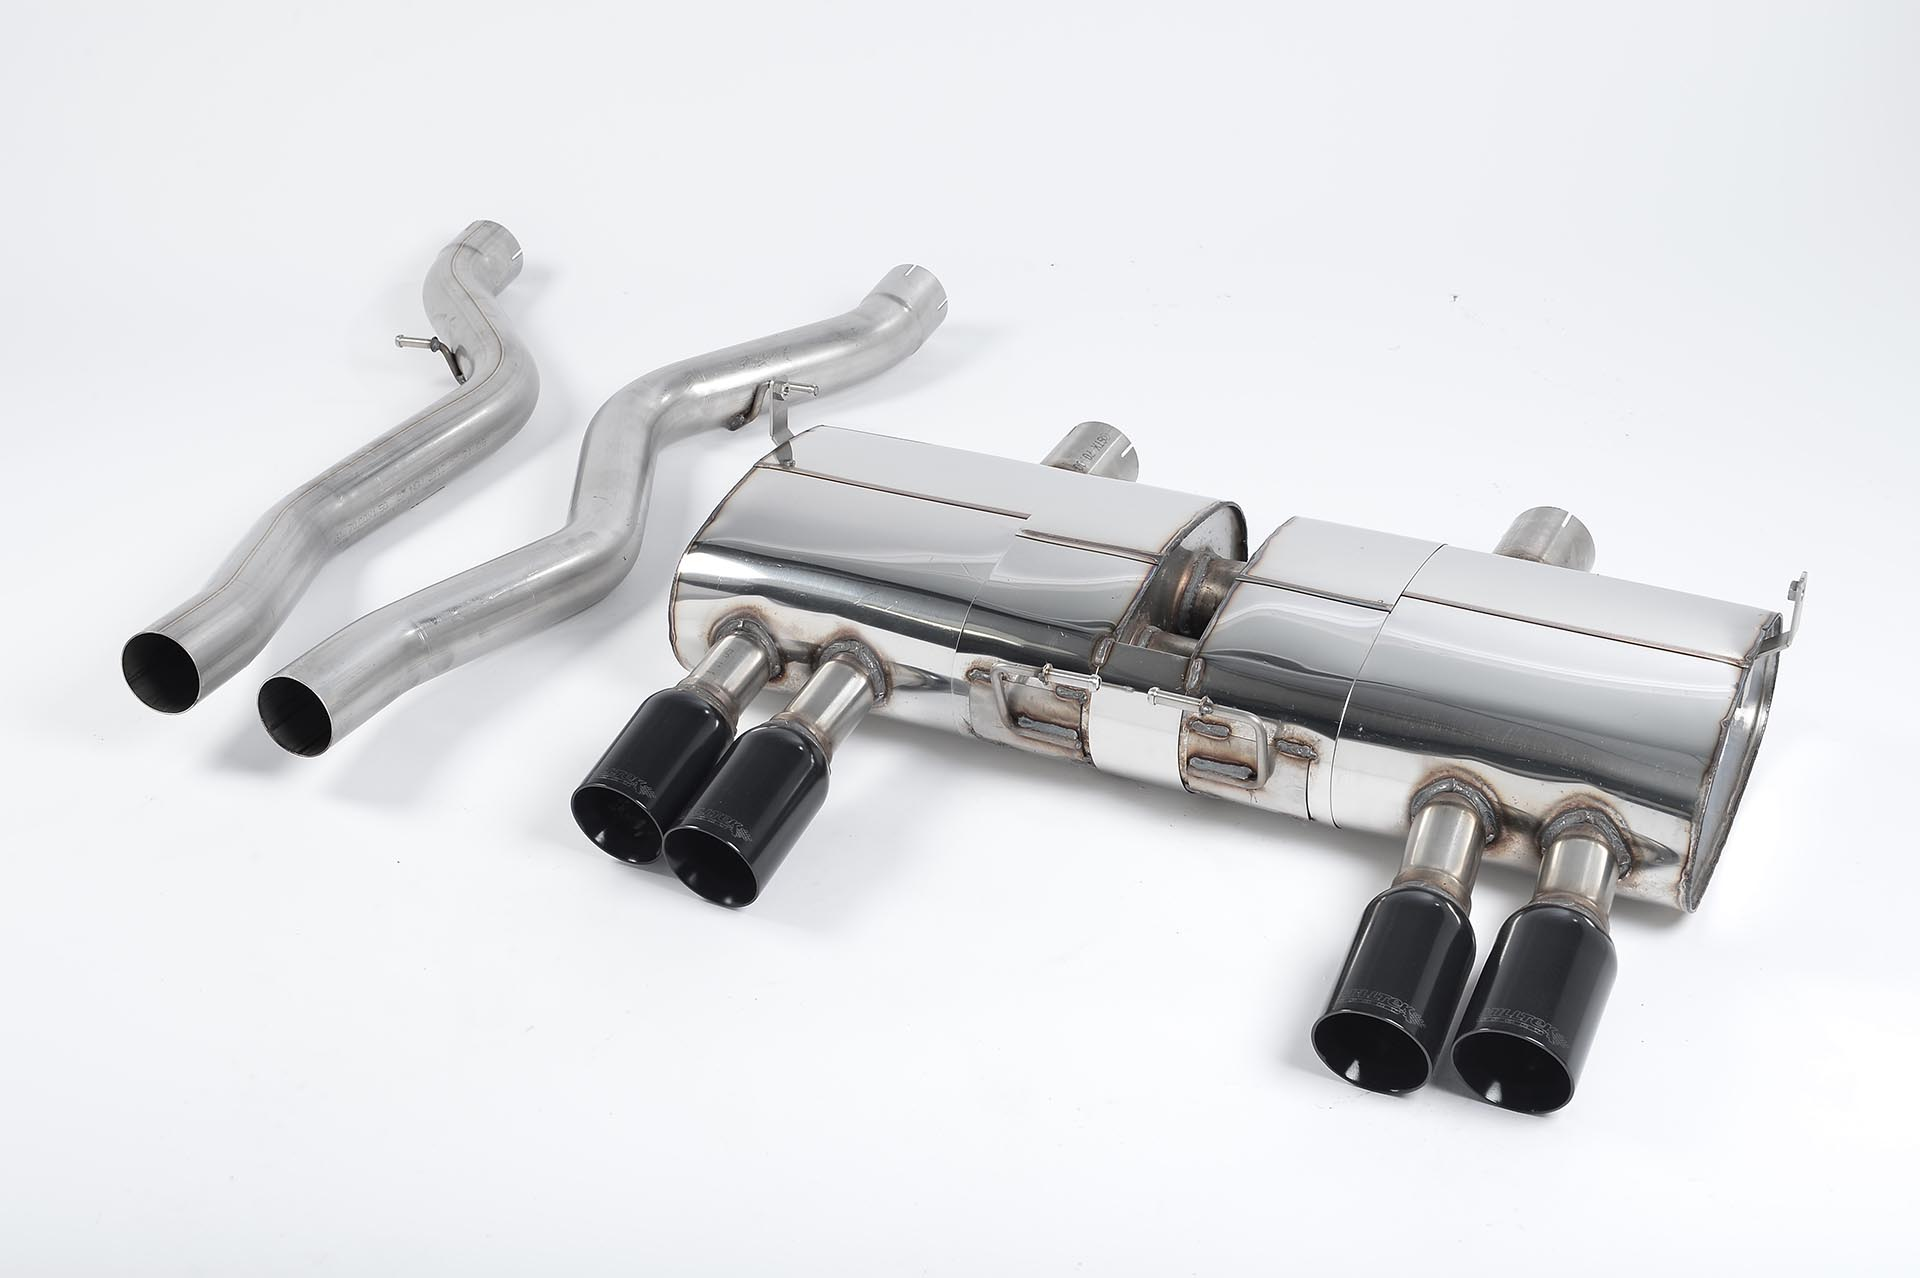 MILLTEK Cat Back Exhaust System SSXBM941 BMW E92 M3 4.0 V8 Coupé / BMW E90 M3 4.0 V8 Saloon - Sedan / BMW E93 M3 4.0 V8 Convertible